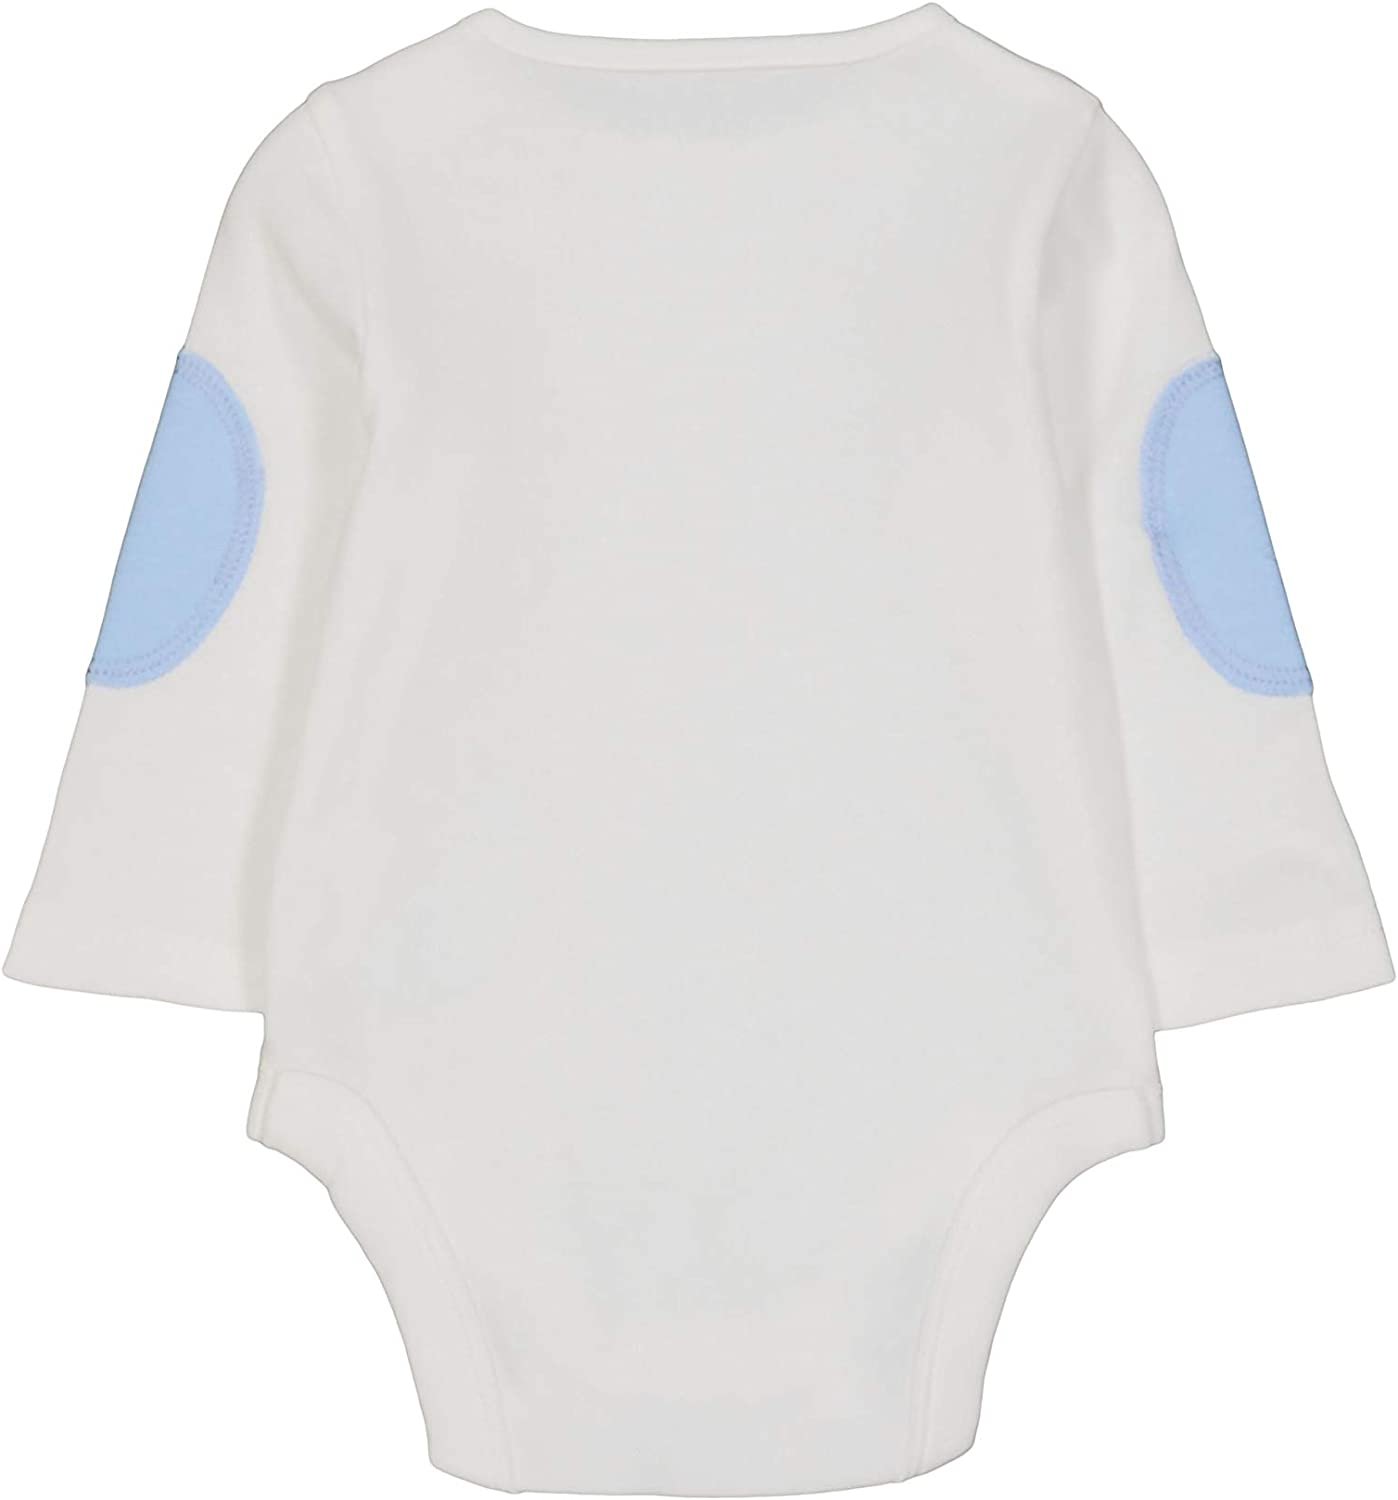 Mothercare Baby Nb MFB Knitted Dungaree Set Clothing